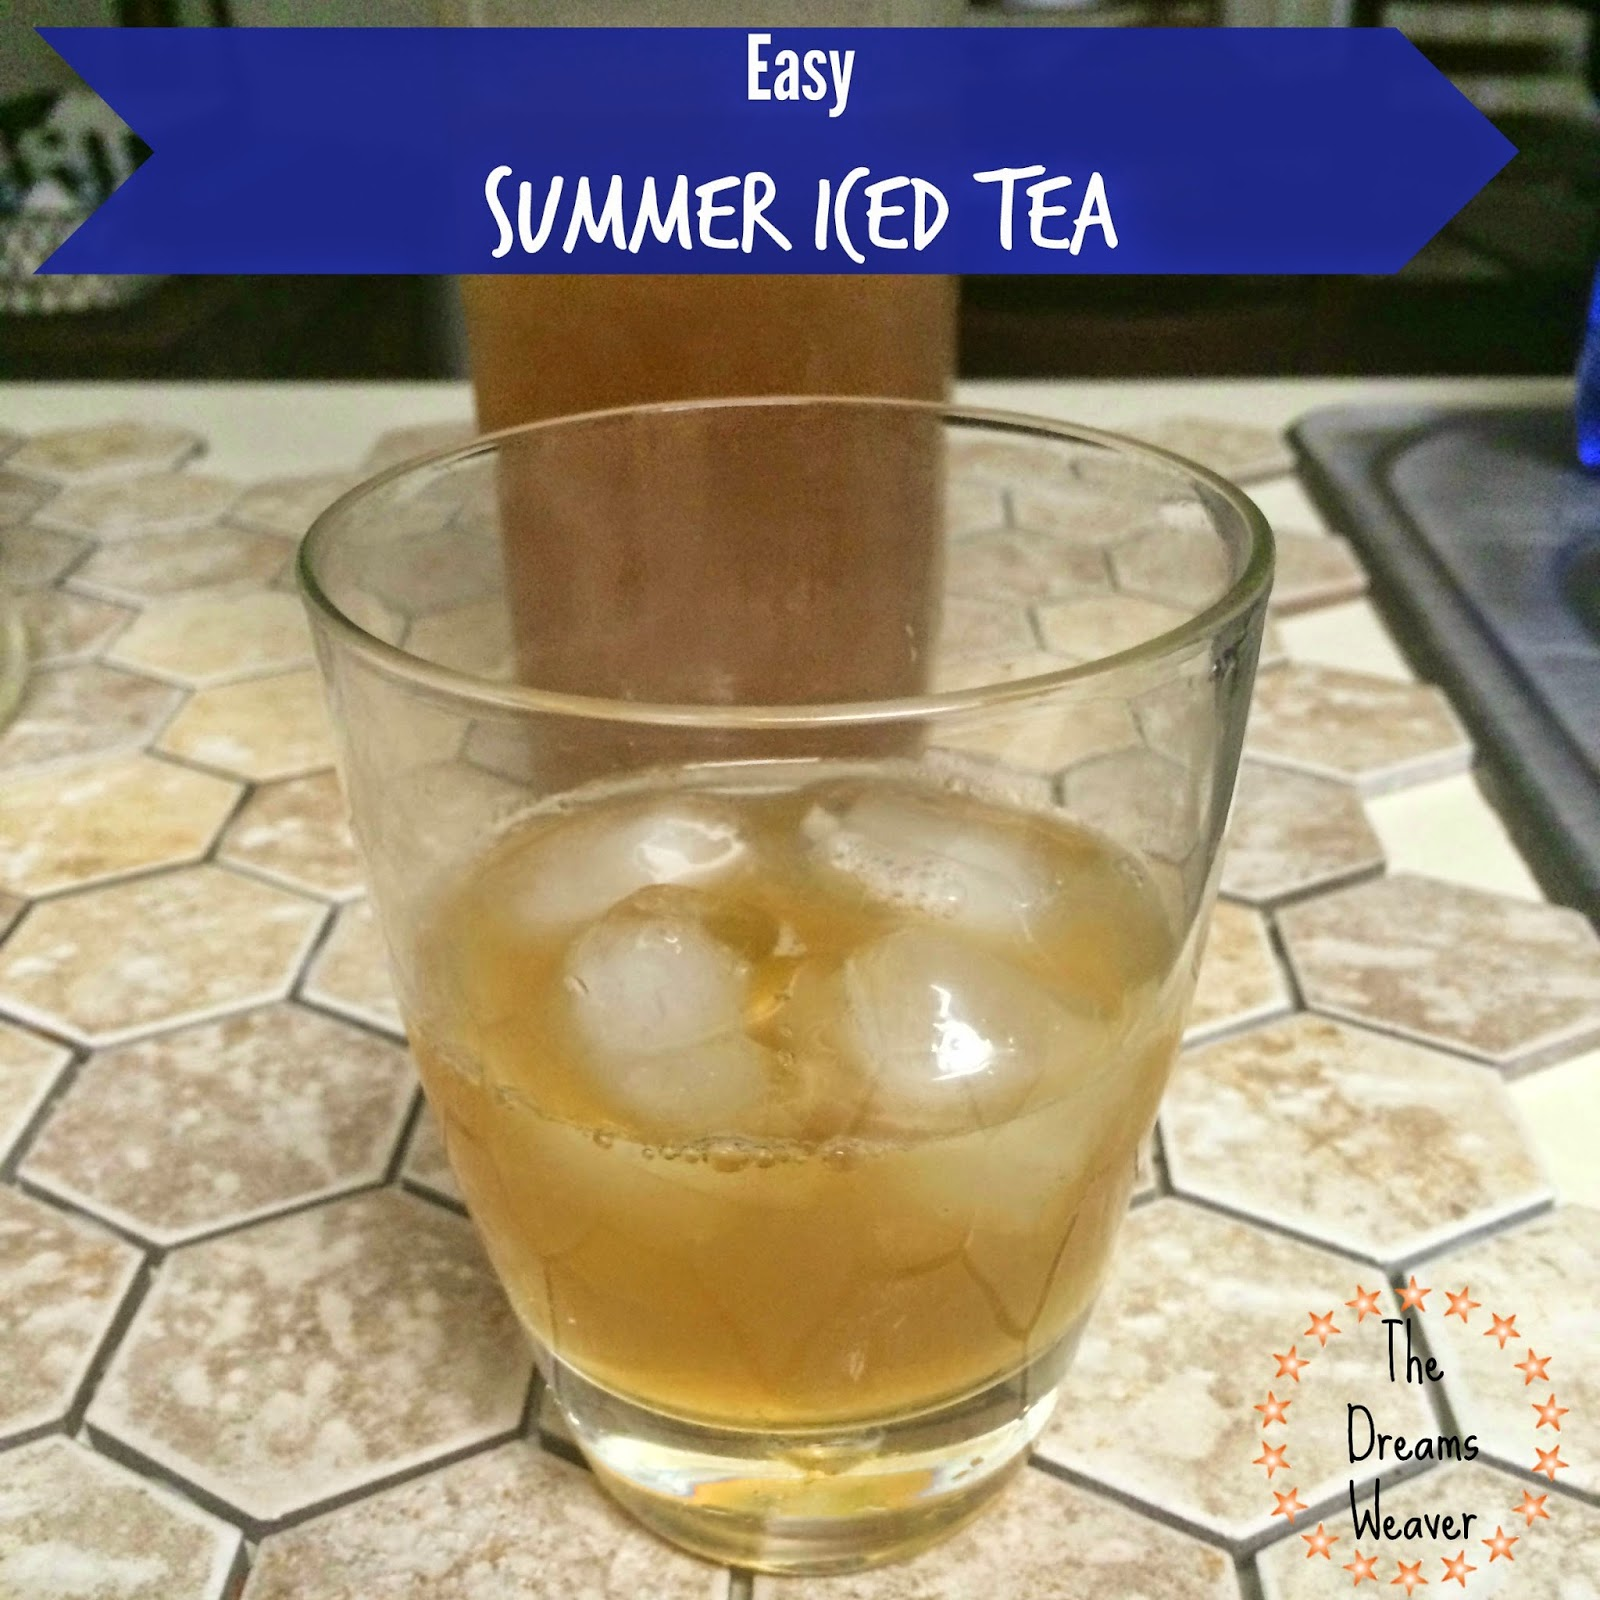 Easy Summer Iced Tea~ The Dreams Weaver